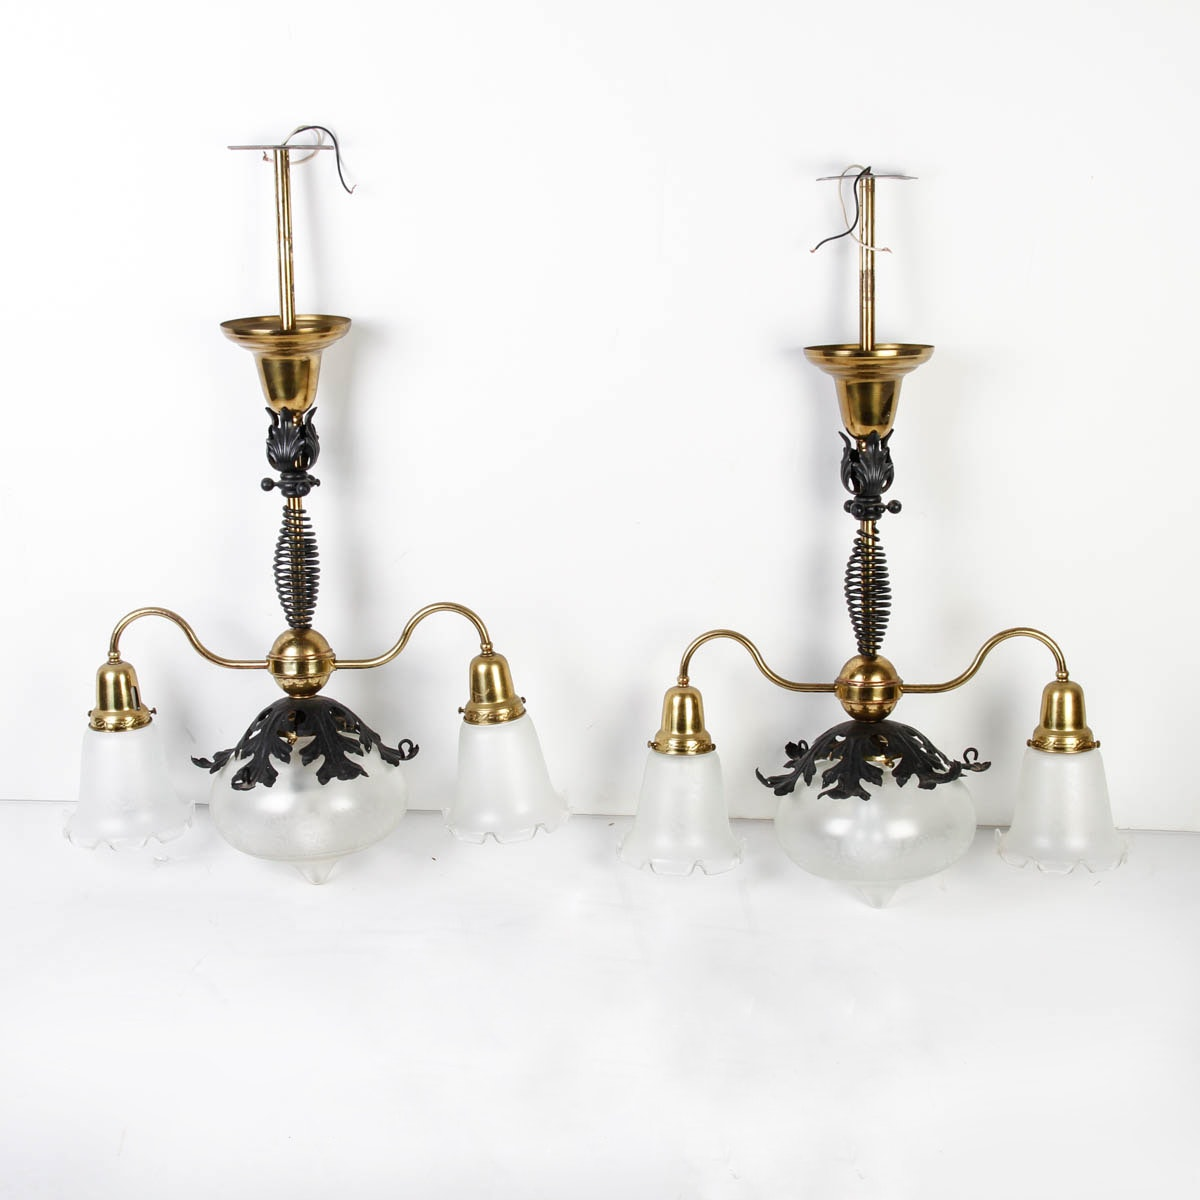 1880s Chandeliers With Frosted Glass Shades